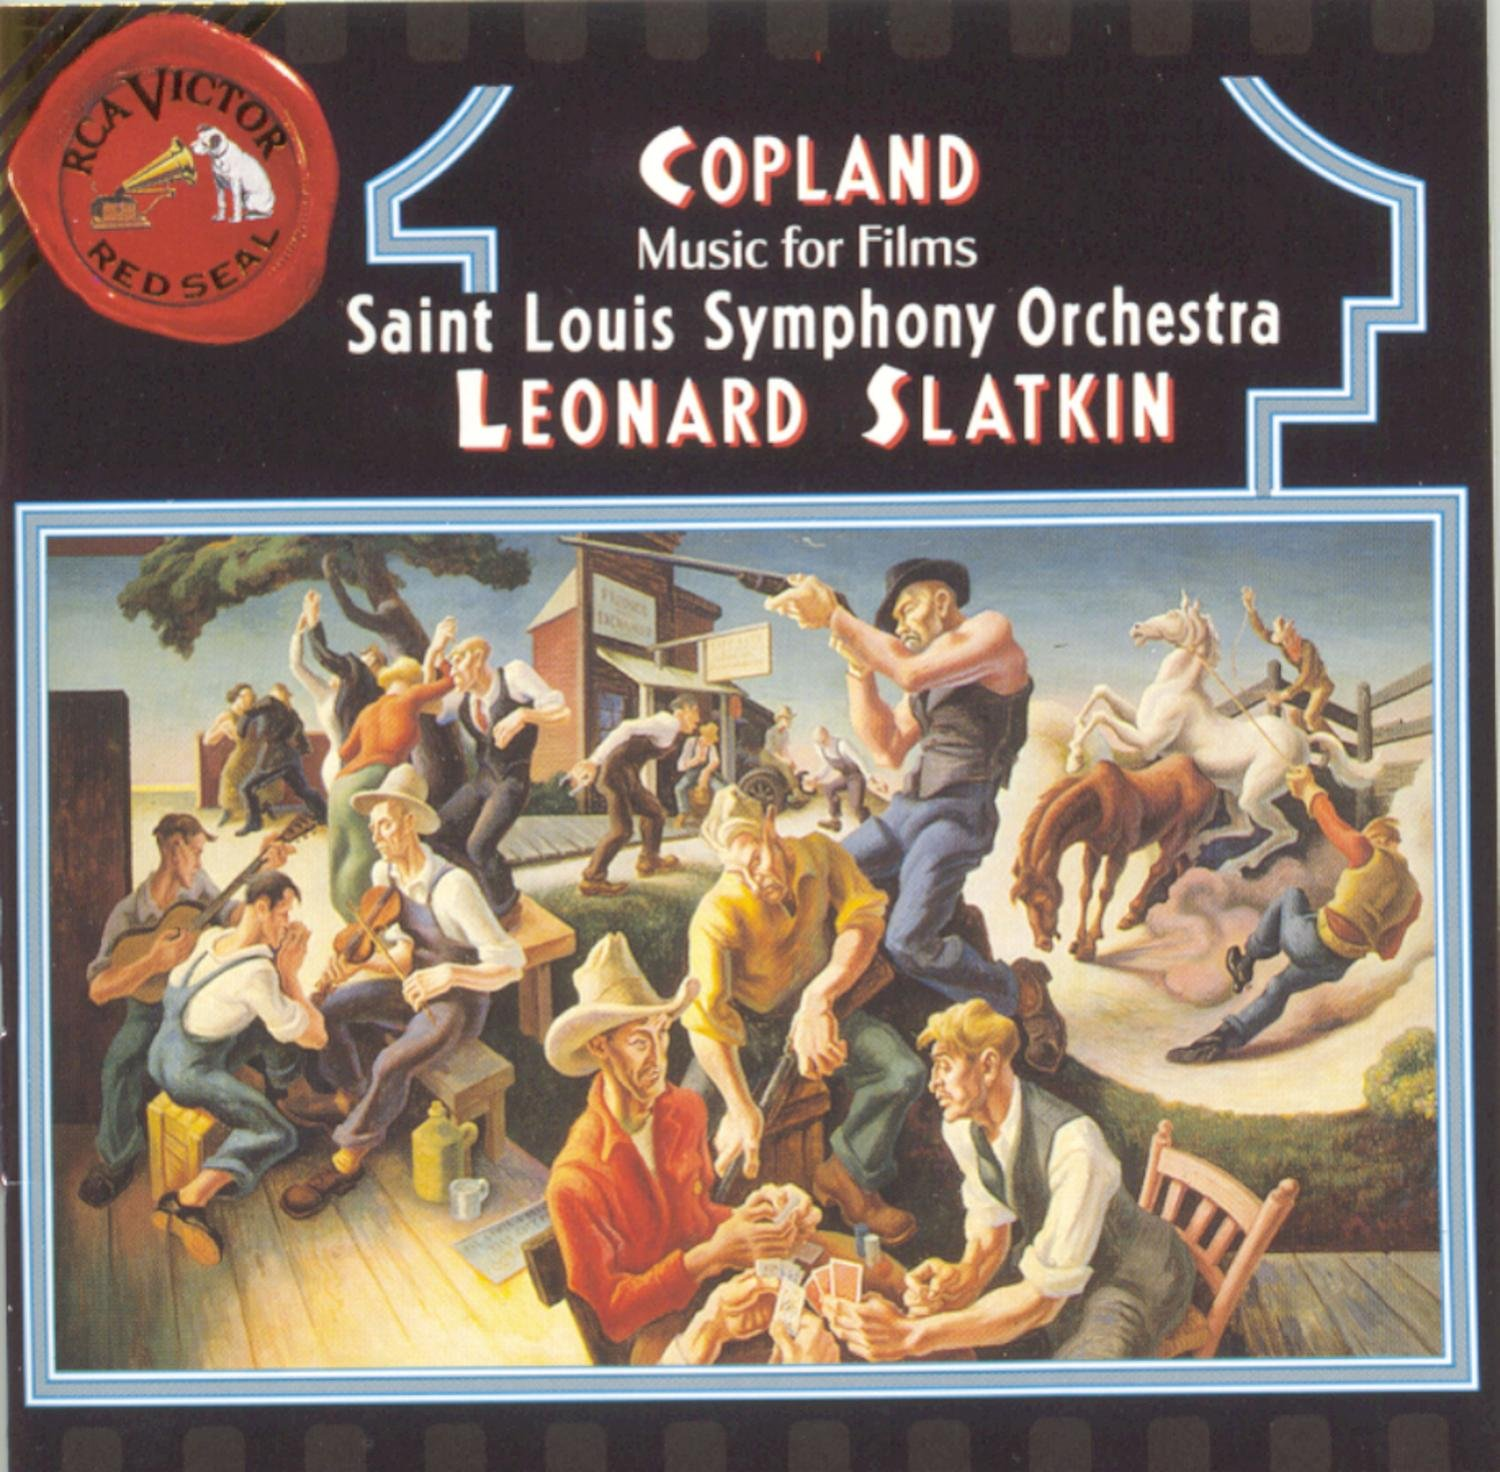 Image result for copland leonard slatkin amazon